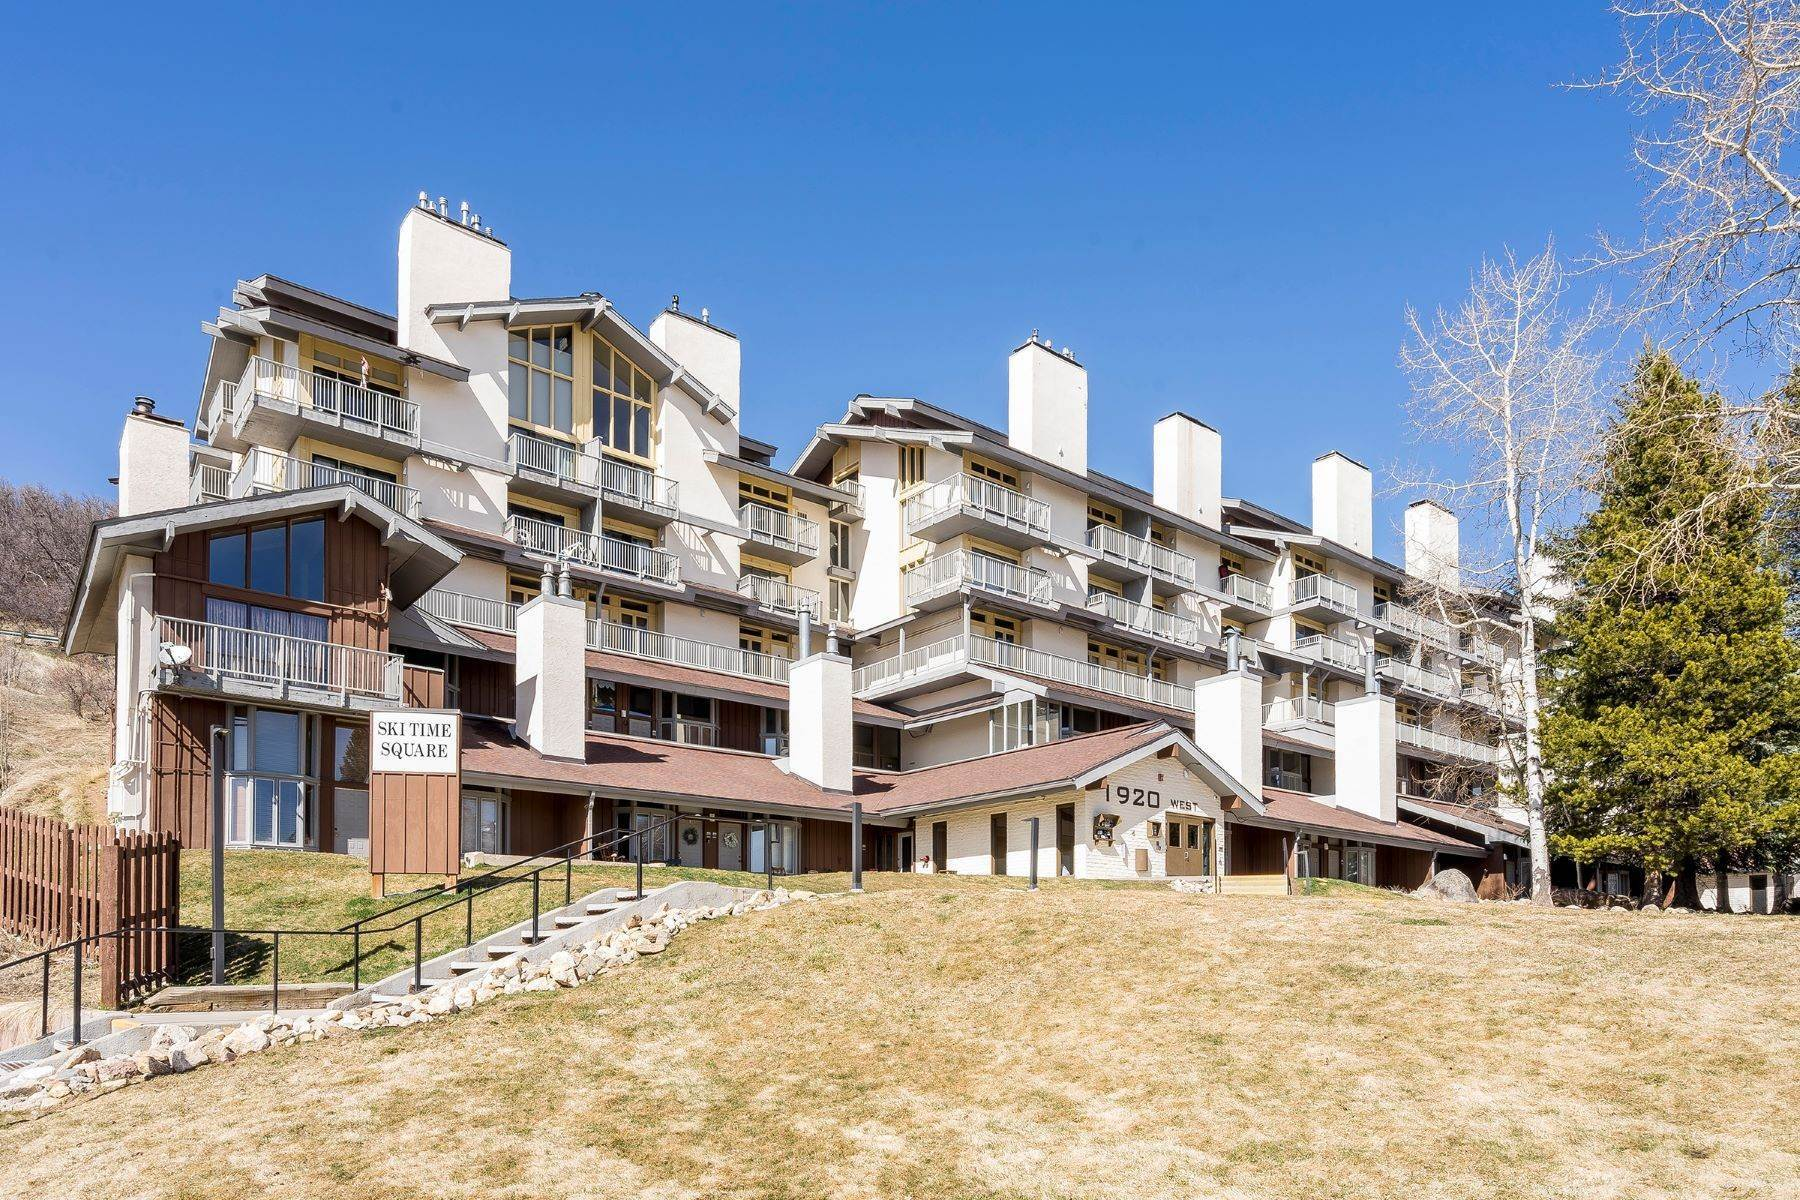 Condominiums for Sale at Ski Time Square Condominium 1920 Ski Time Square Drive Unit #102 Steamboat Springs, Colorado 80487 United States